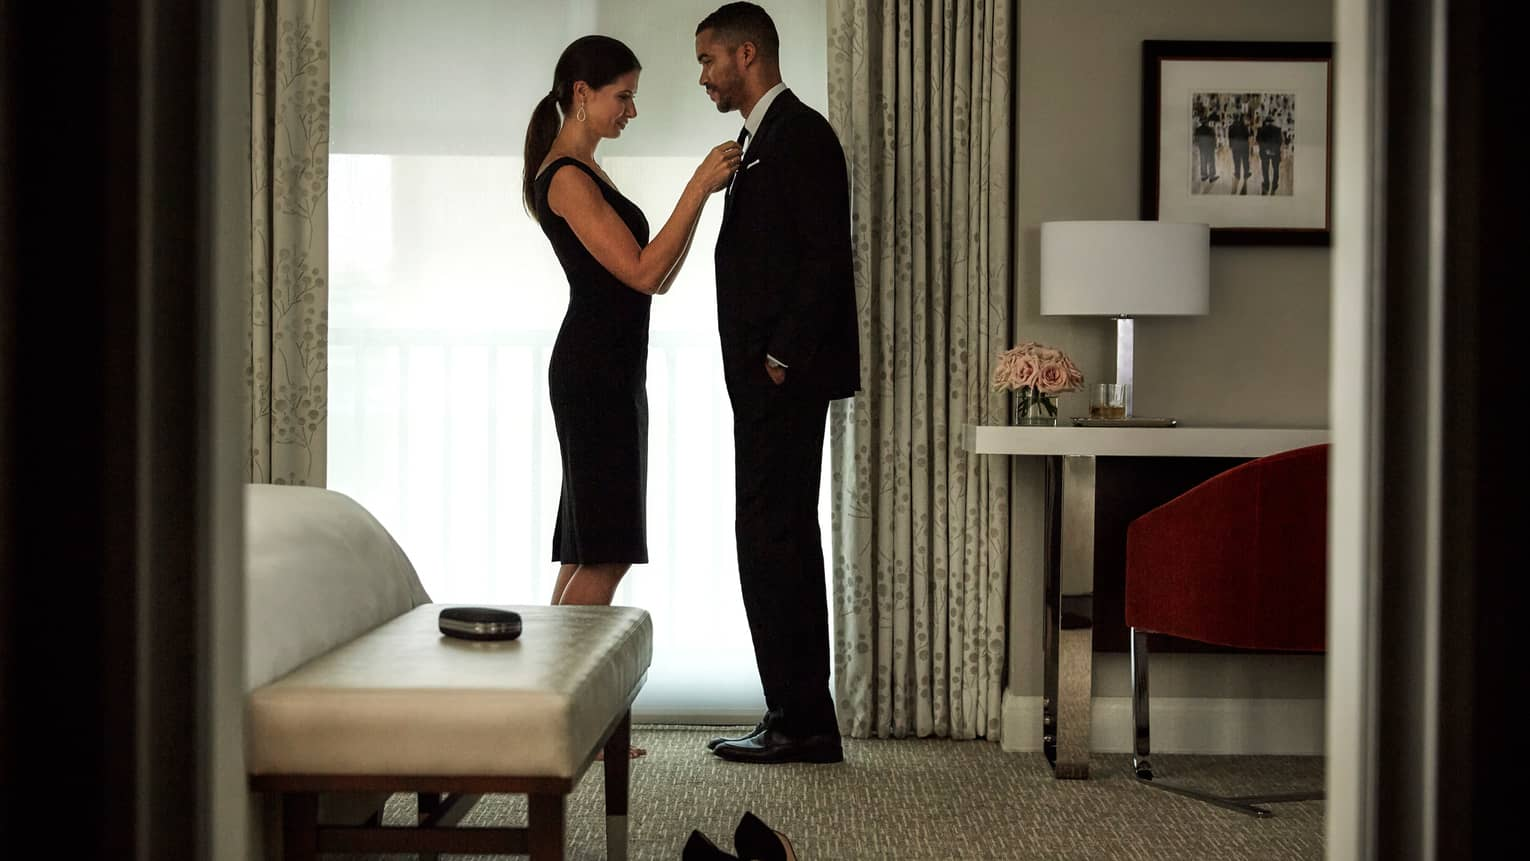 Woman in black dress fixes tie for man in suit by hotel room window with white shades, work desk and bench